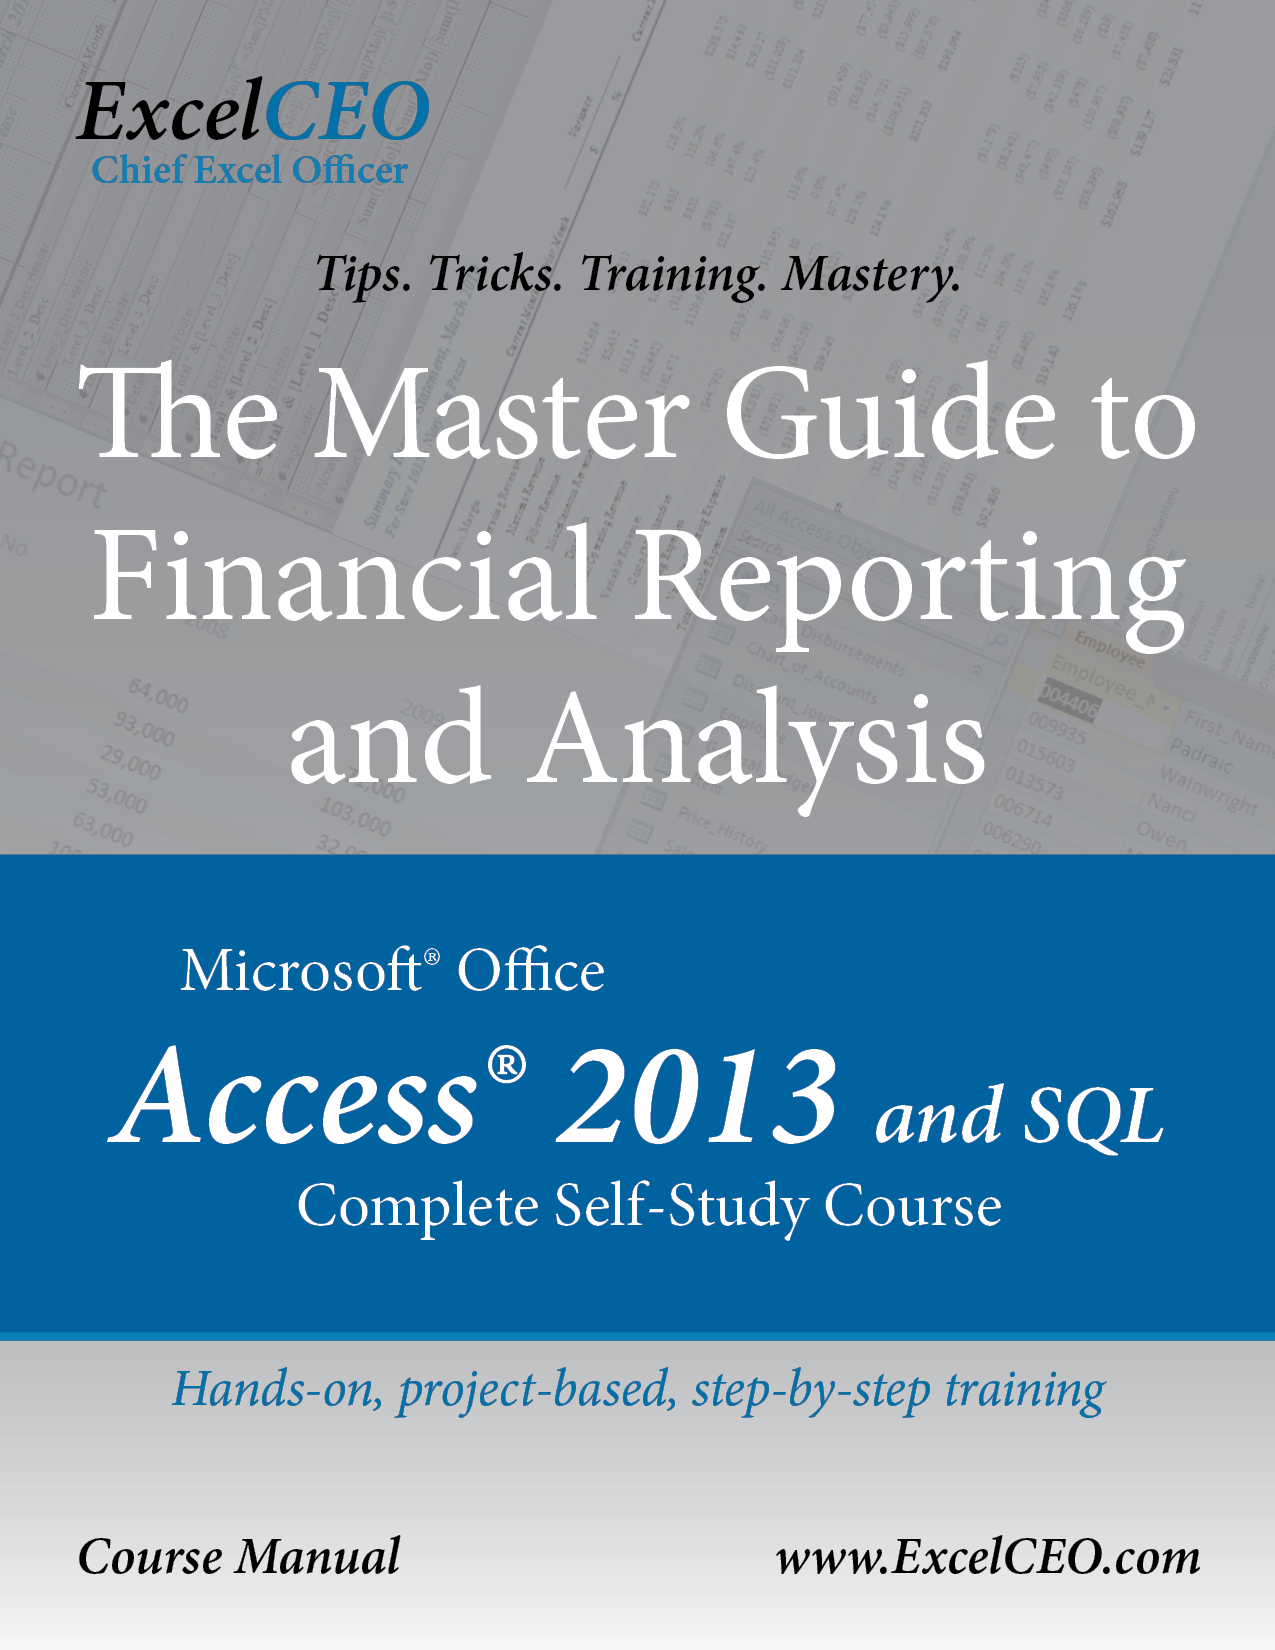 Access 2013 and SQL Manual Cover and Description Link